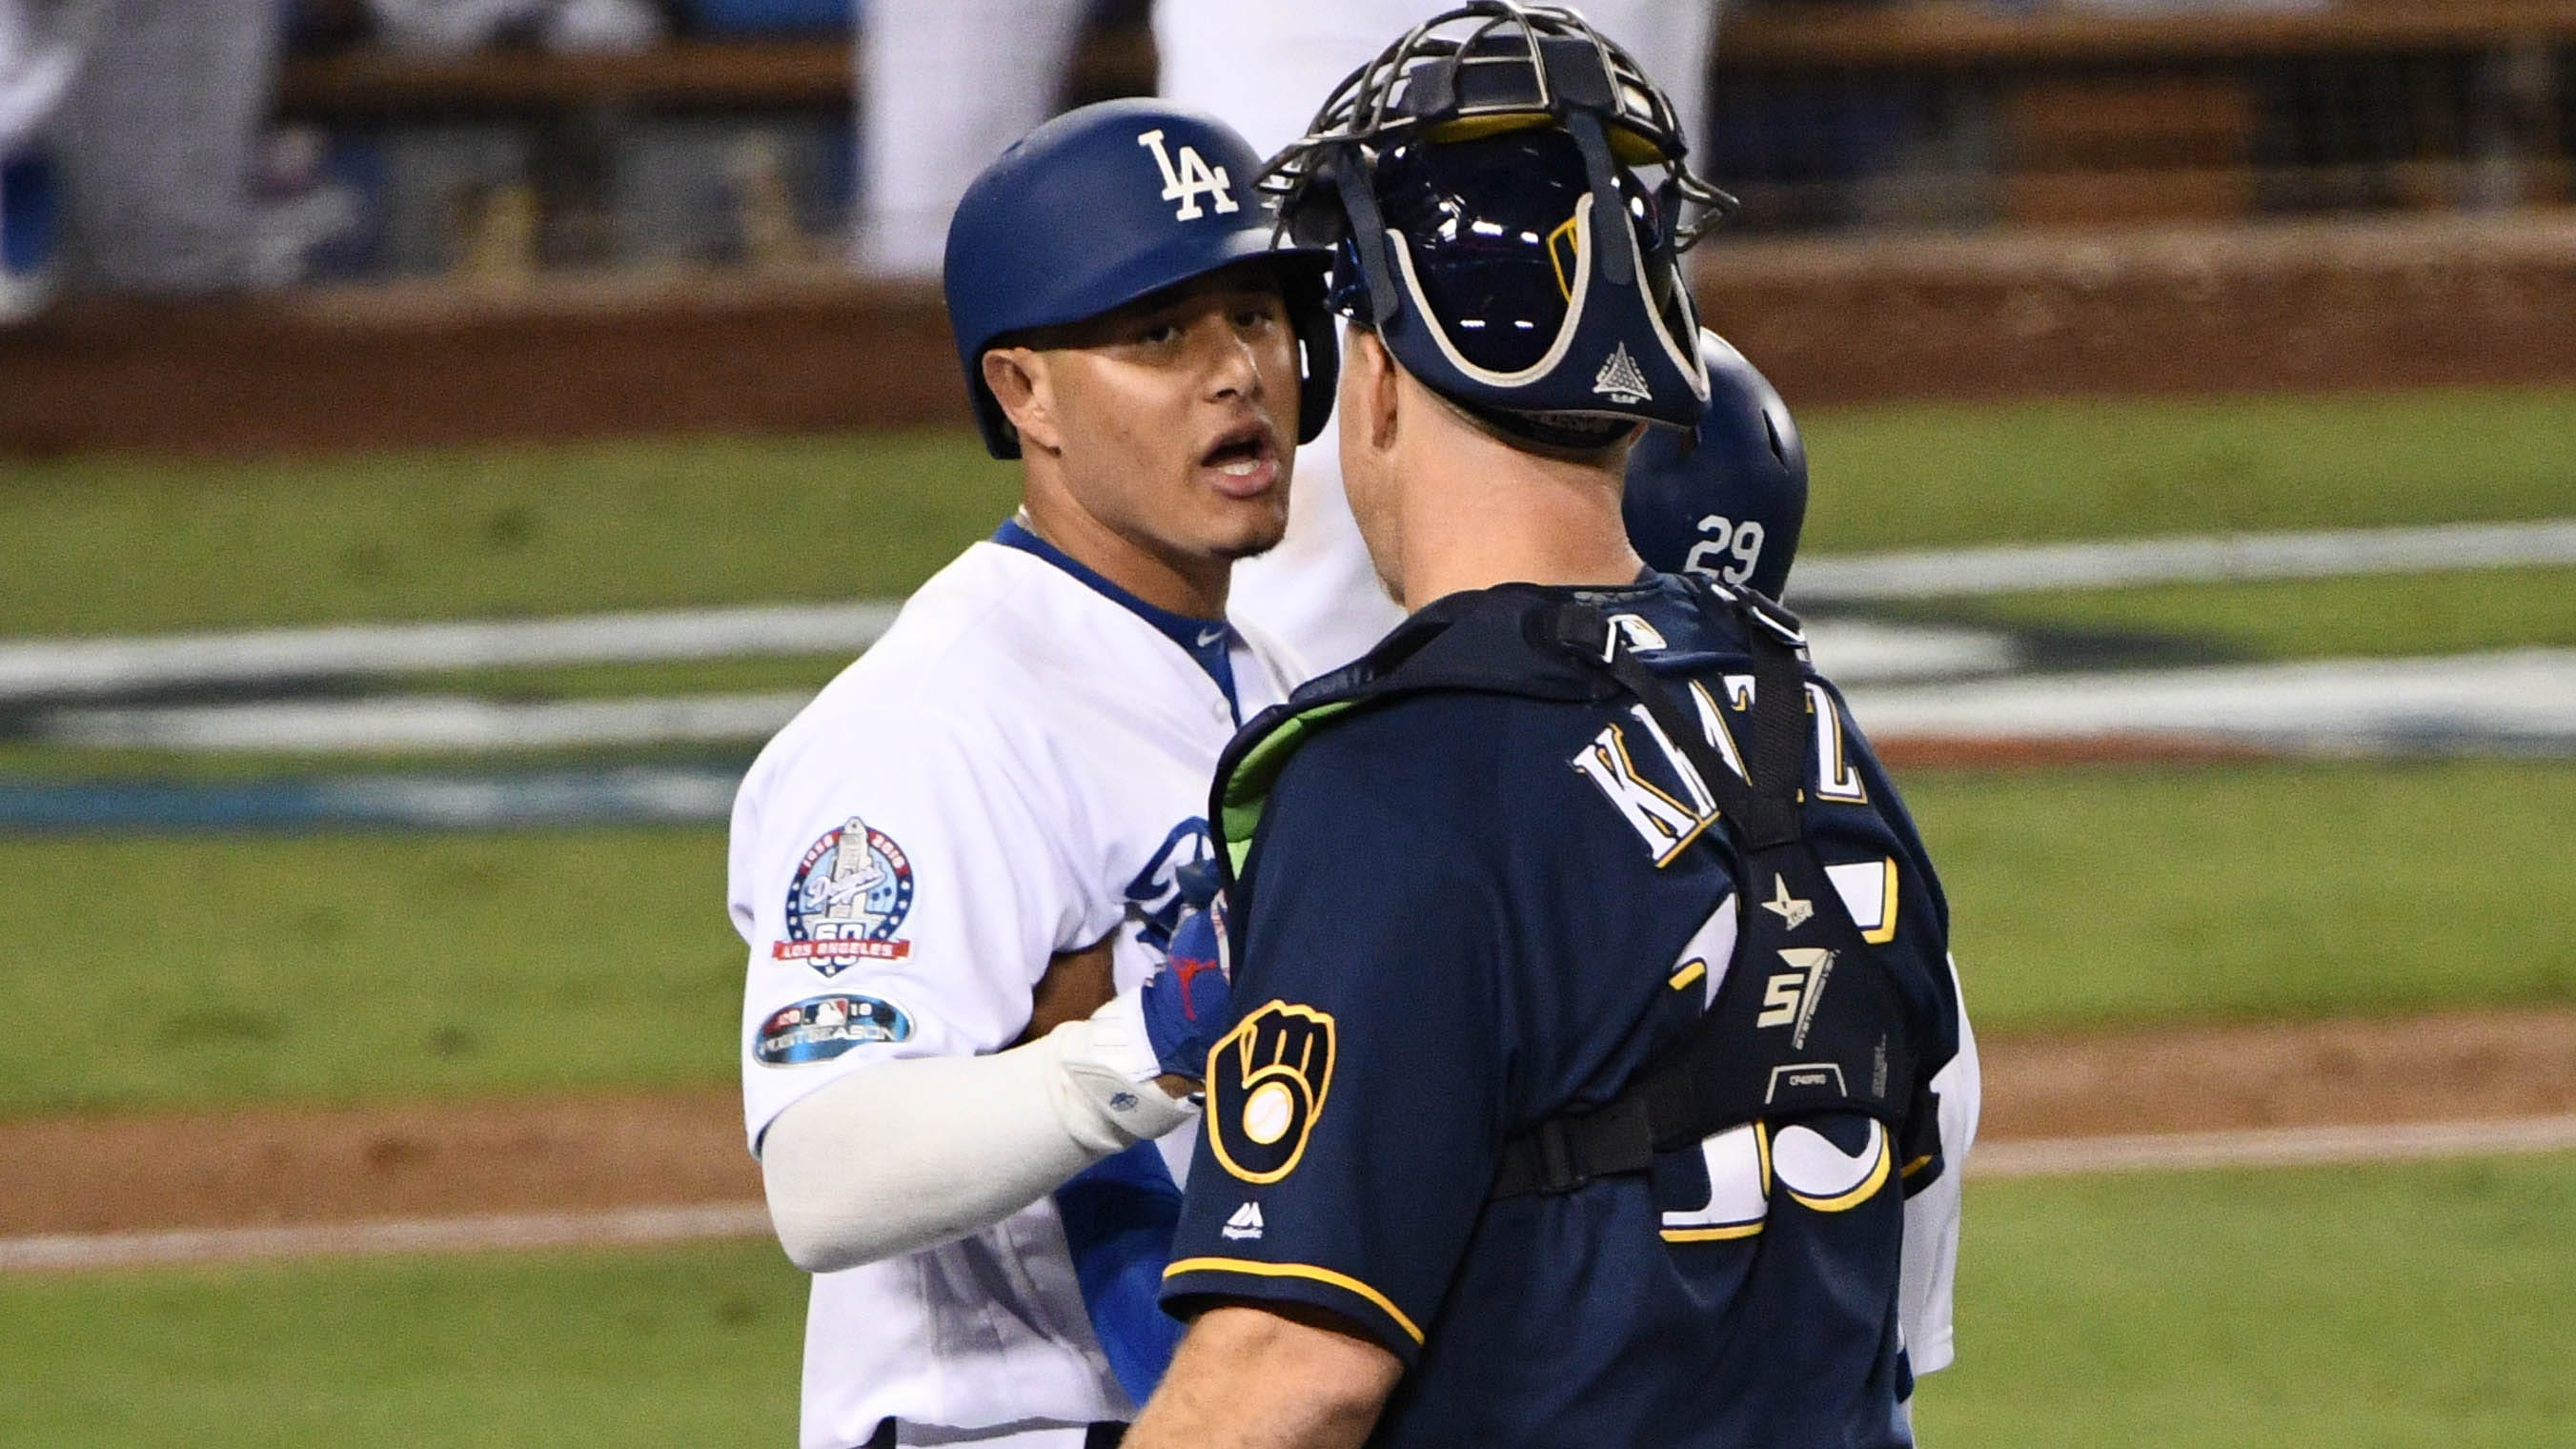 Dodgers shortstop Manny Machado and Brewers catcher Erik Kratz react after Machado clipped first baseman Jesus Aguilar on the way to first base.